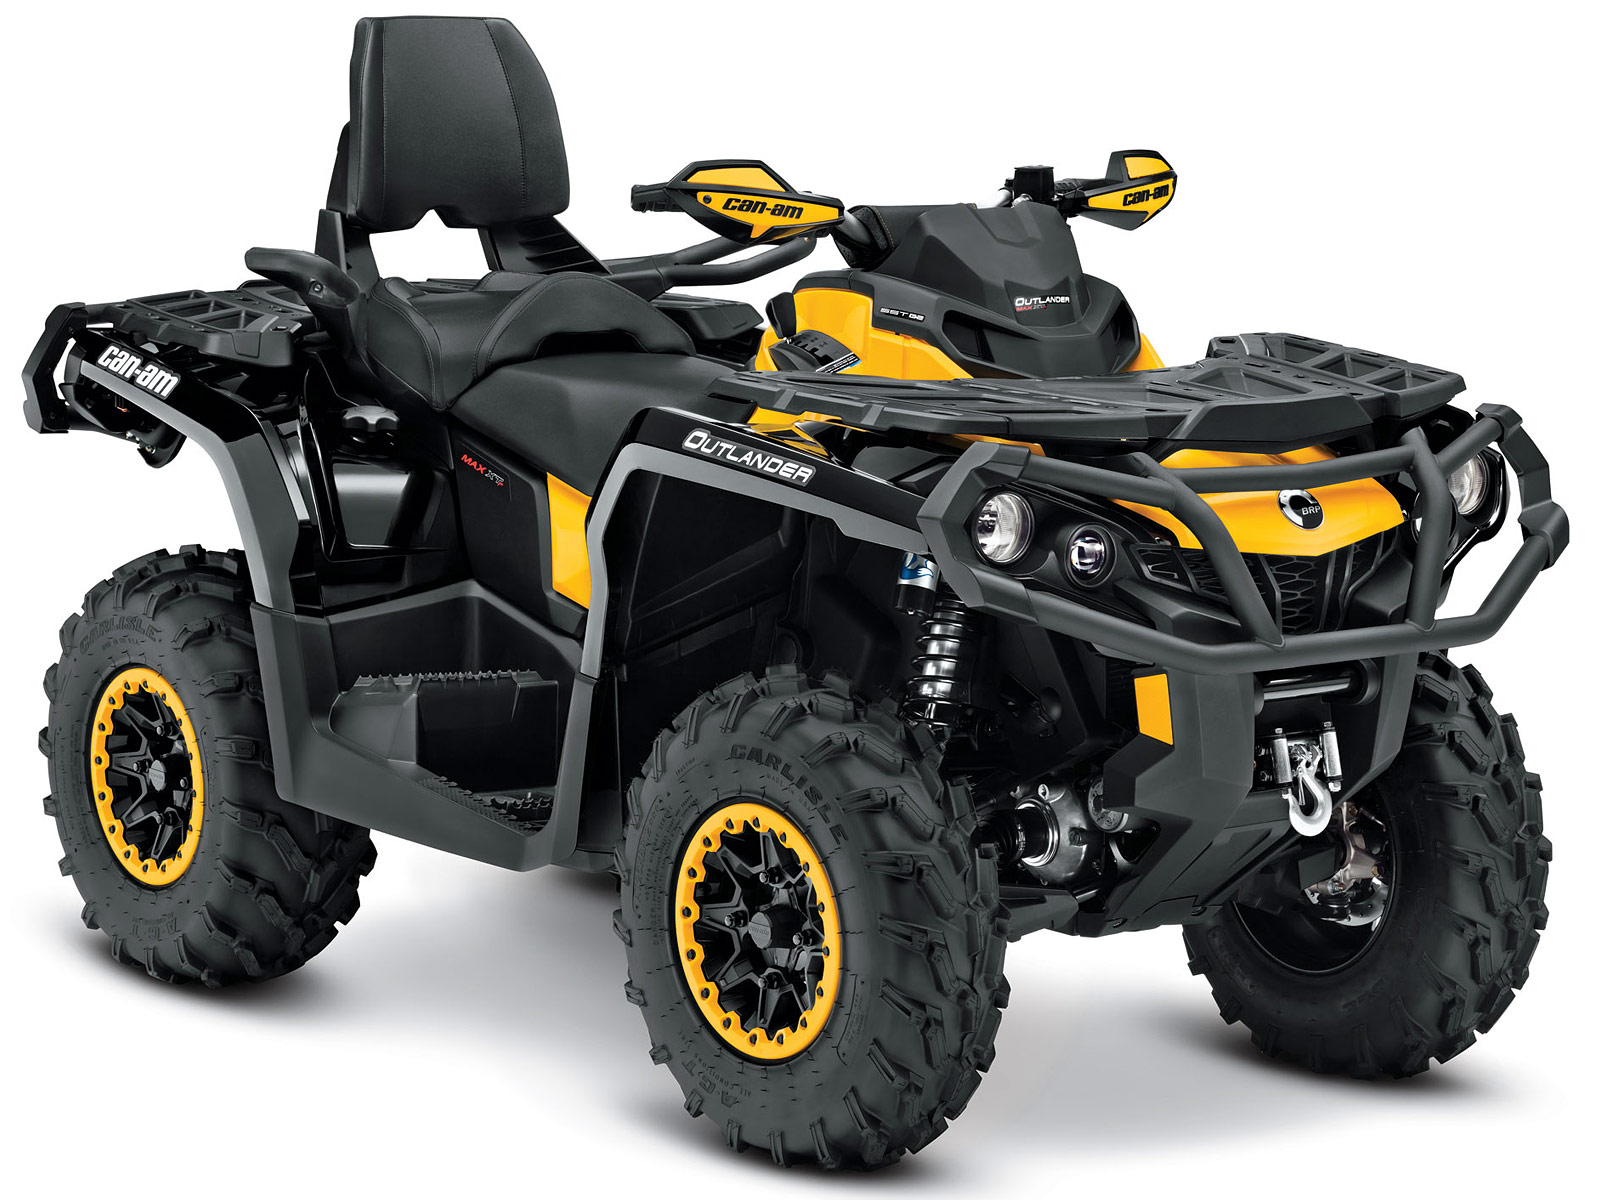 atv insurance information 2013 can am outlander max xt p 800r pictures. Black Bedroom Furniture Sets. Home Design Ideas